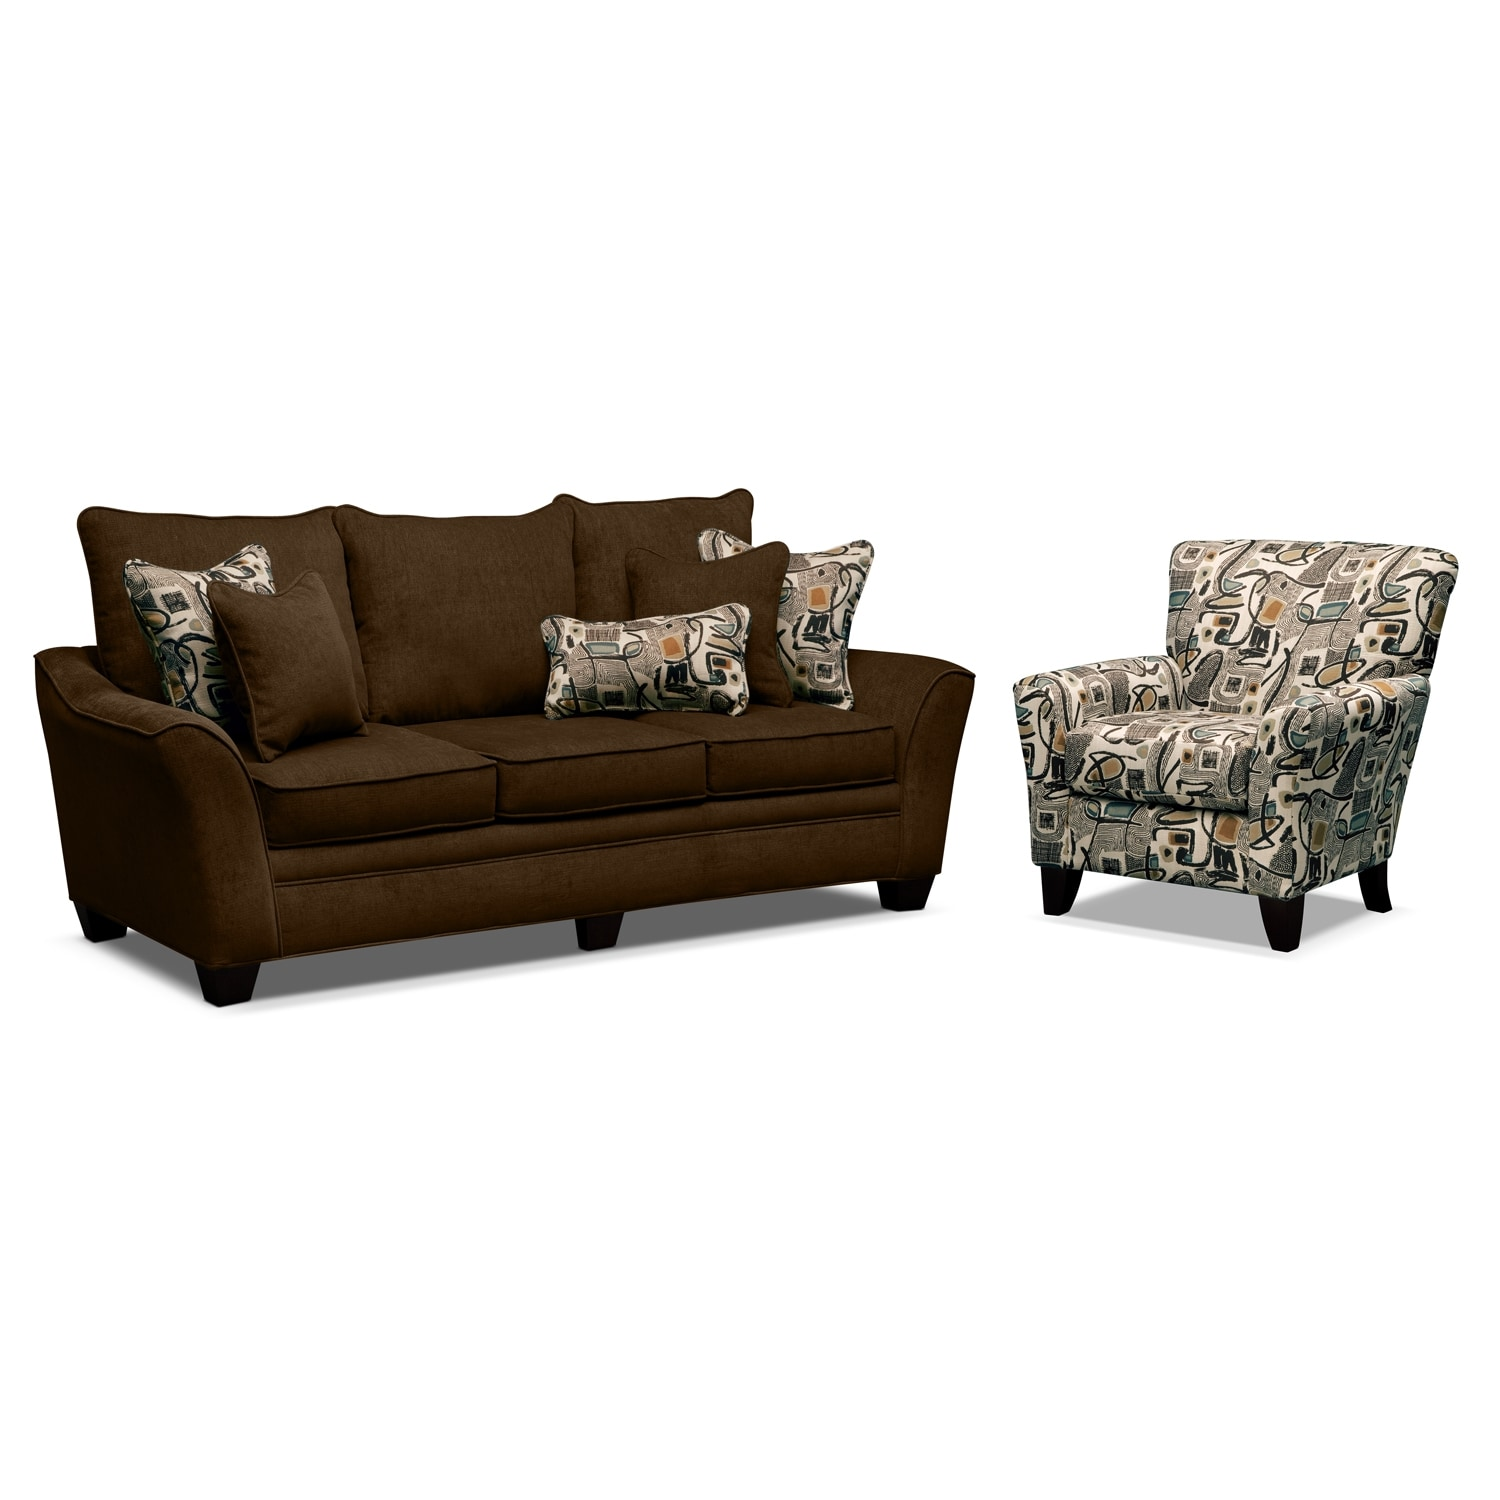 Living Room Furniture - Mandalay 2 Pc. Living Room w/Accent Chair